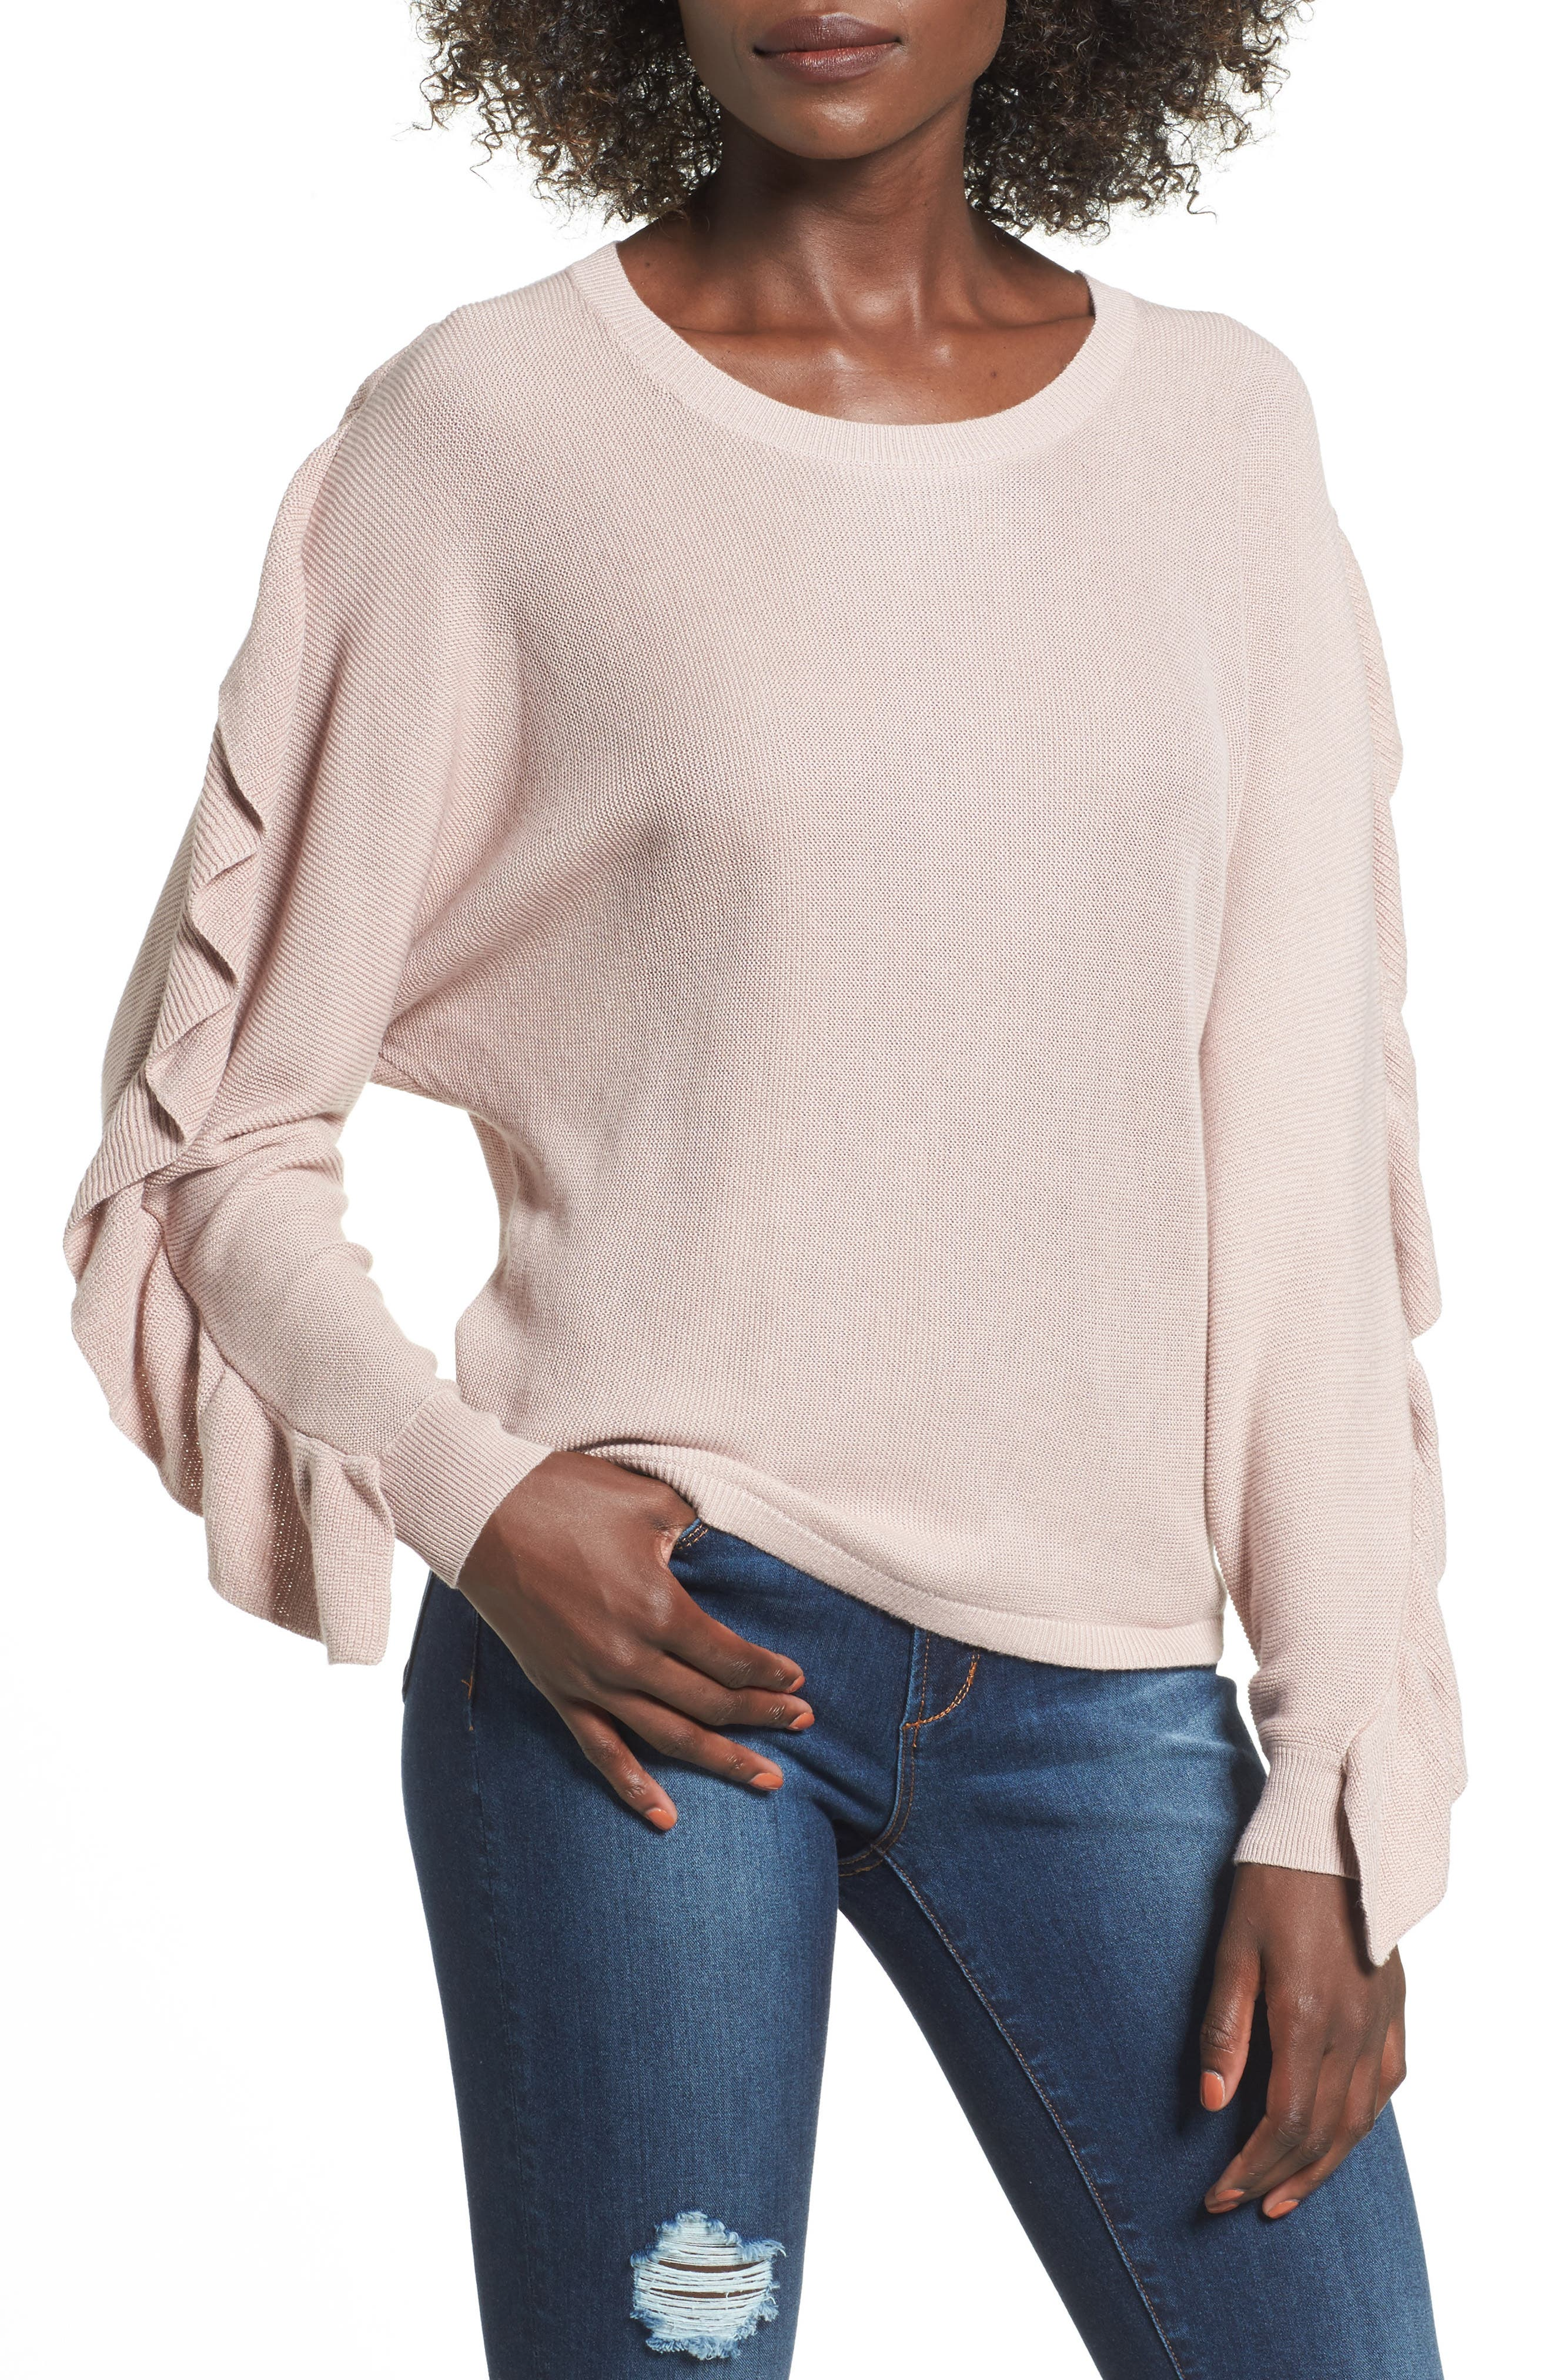 Ruffle Sleeve Sweater,                             Main thumbnail 1, color,                             Pink Adobe